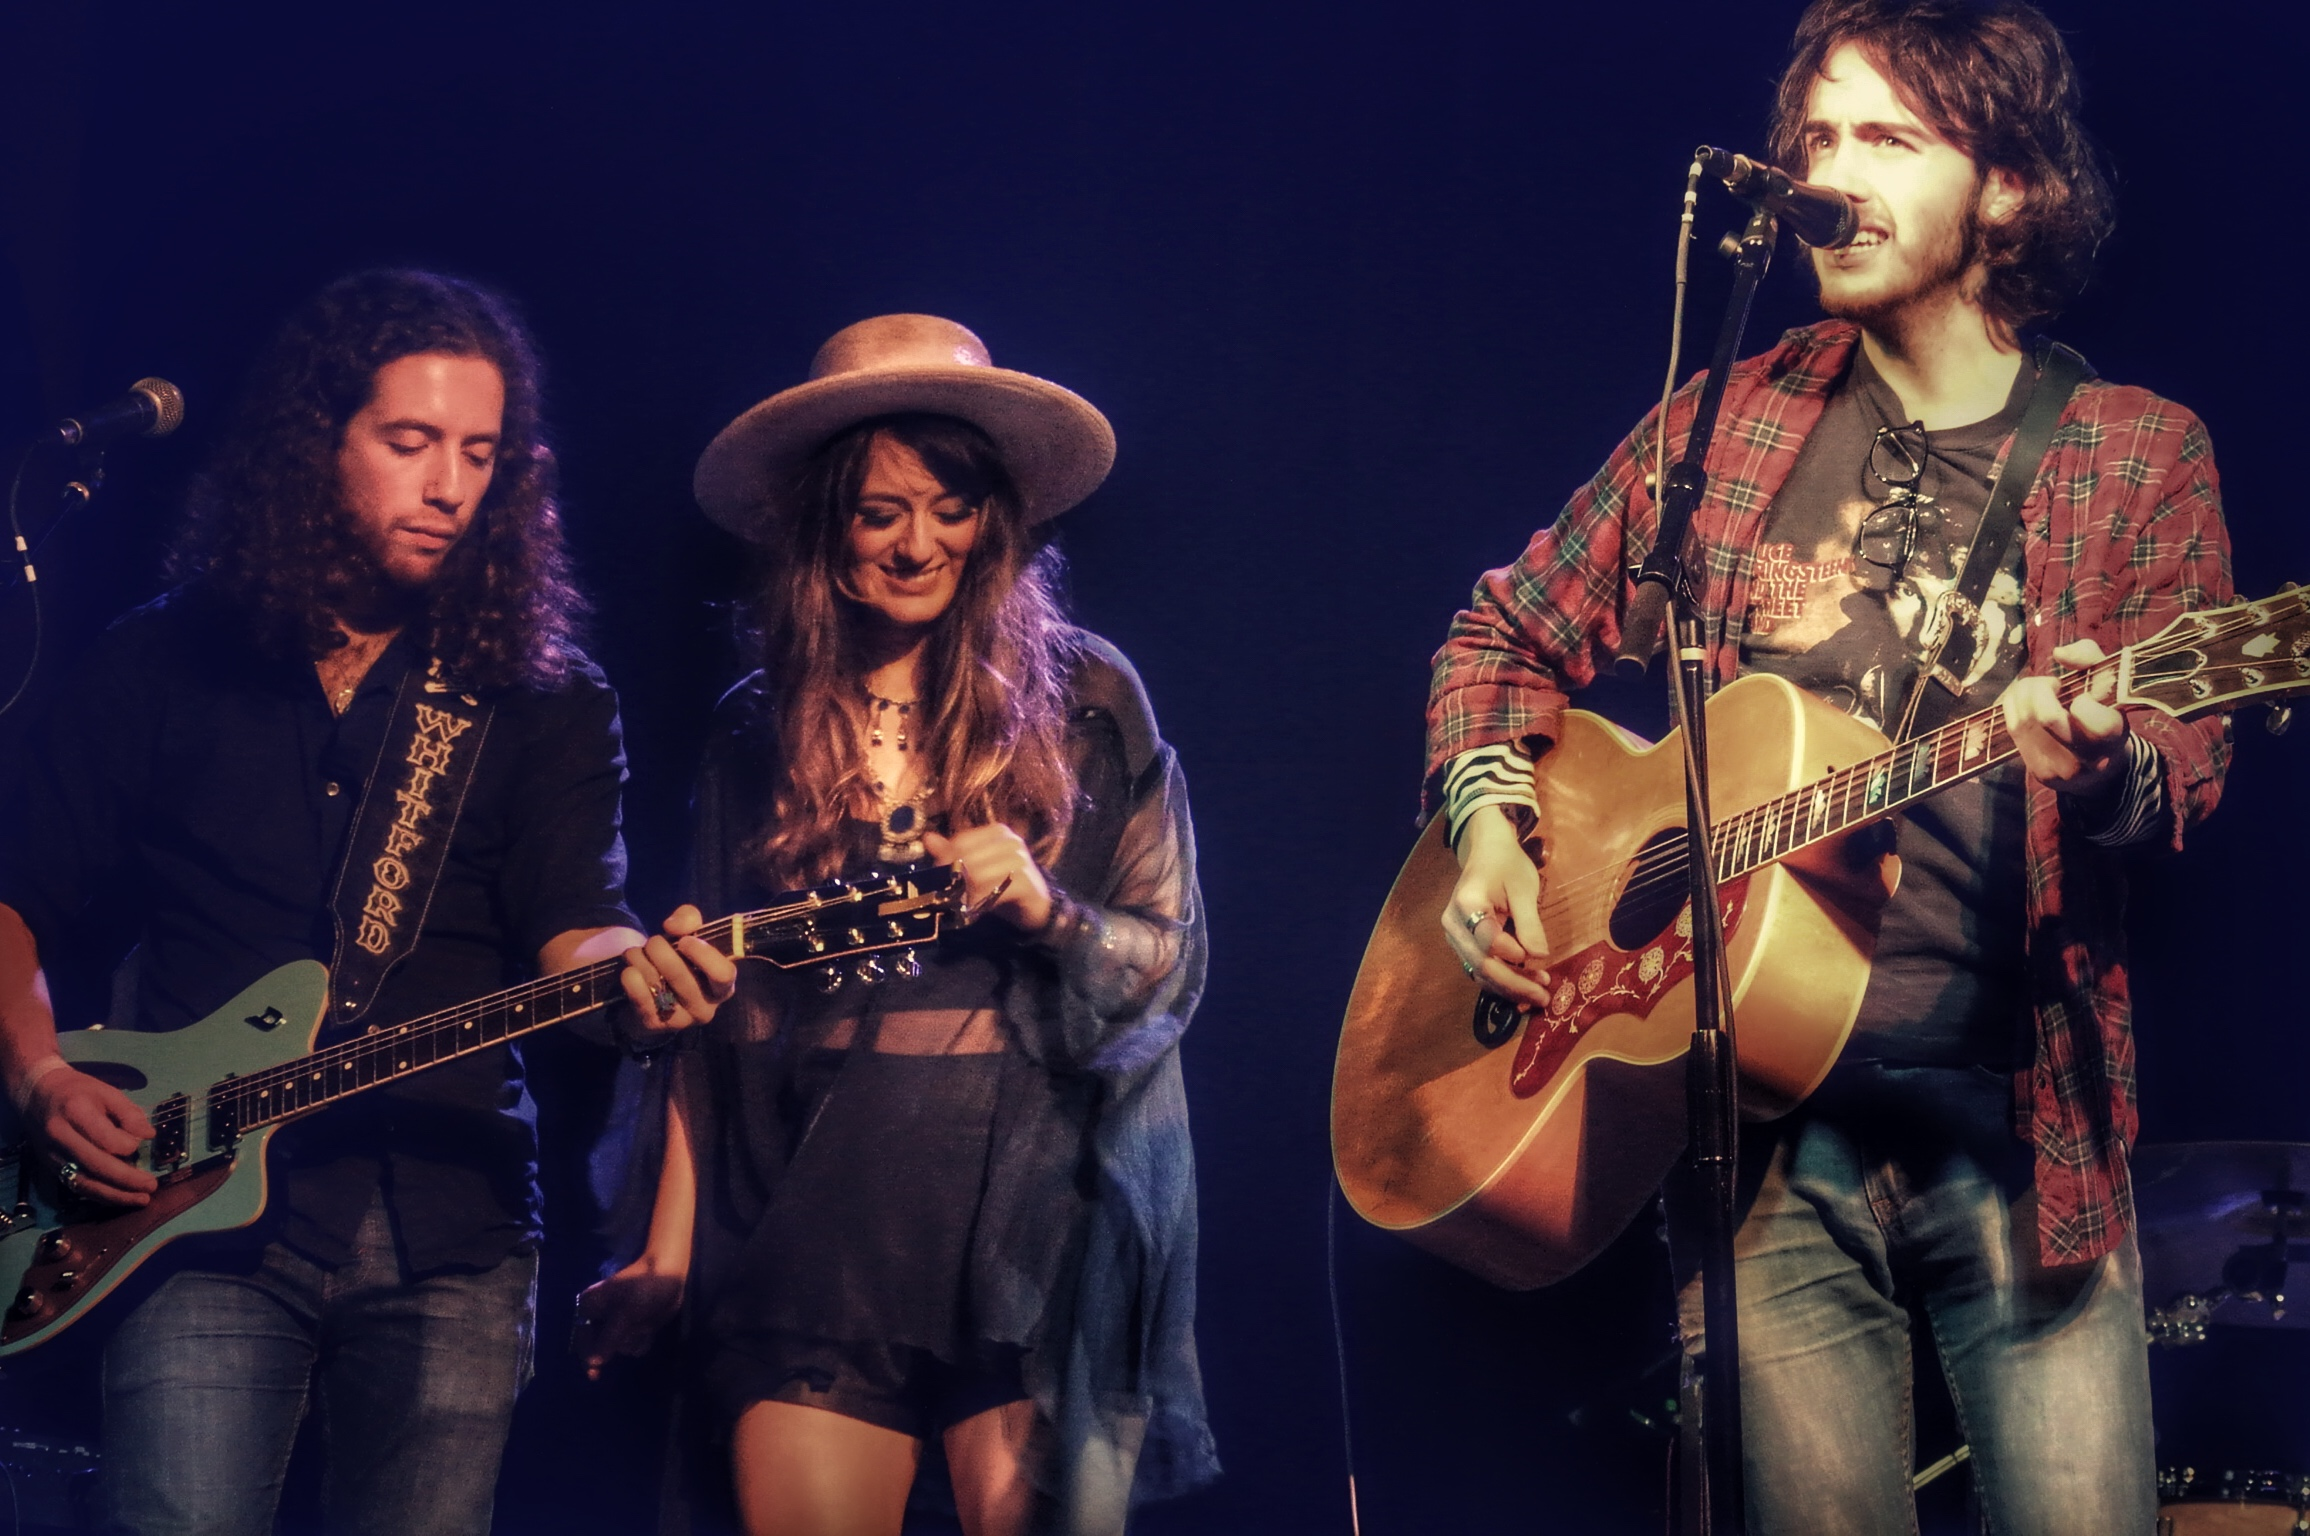 Live at 3rd & lindsley - AB & Friends. Photo by  Chelsea Raynea Garcia